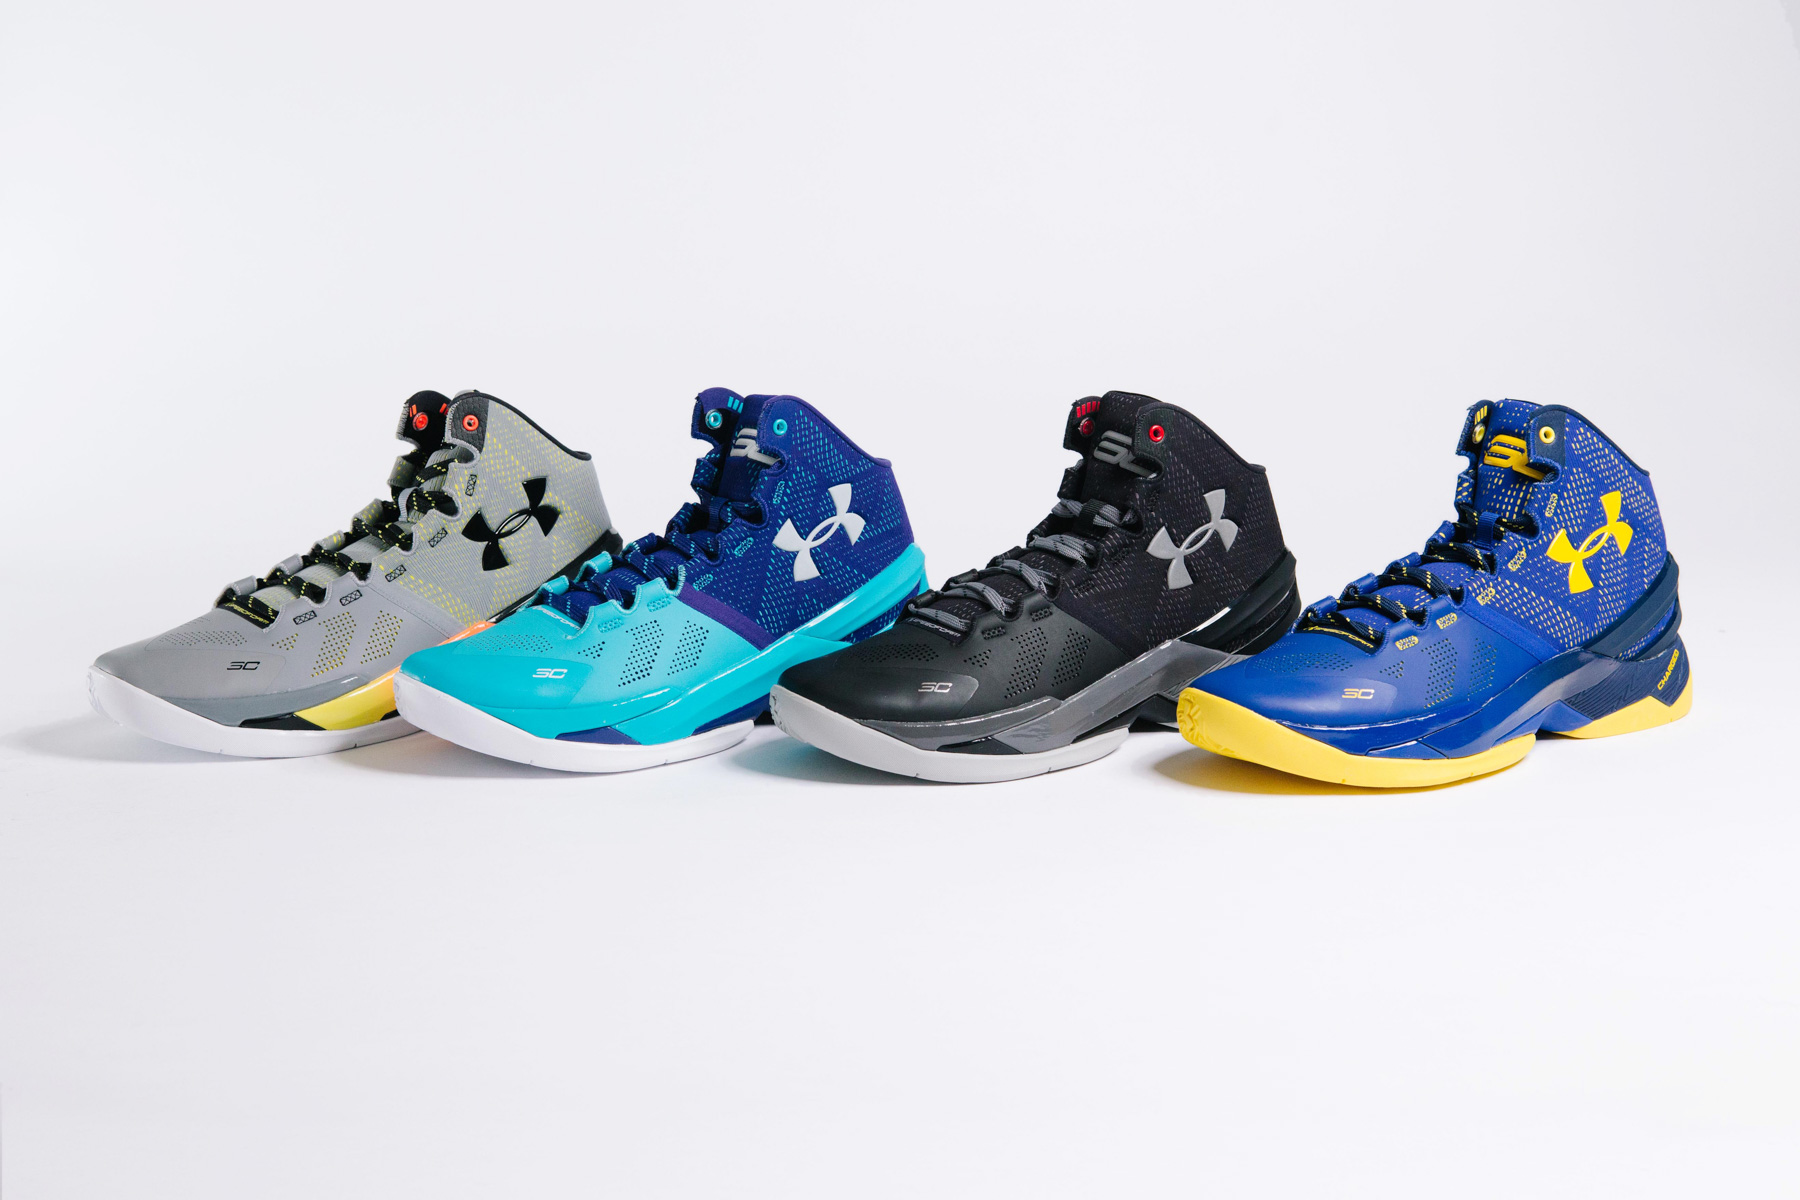 under armour vs nike essay Executive summary overview nike is the market leader in athletic shoes in the united states the oregon based company has always utilized offshore facilities in low-income countries to produce at minimal costs followed by importation into predominantly the us for sales.